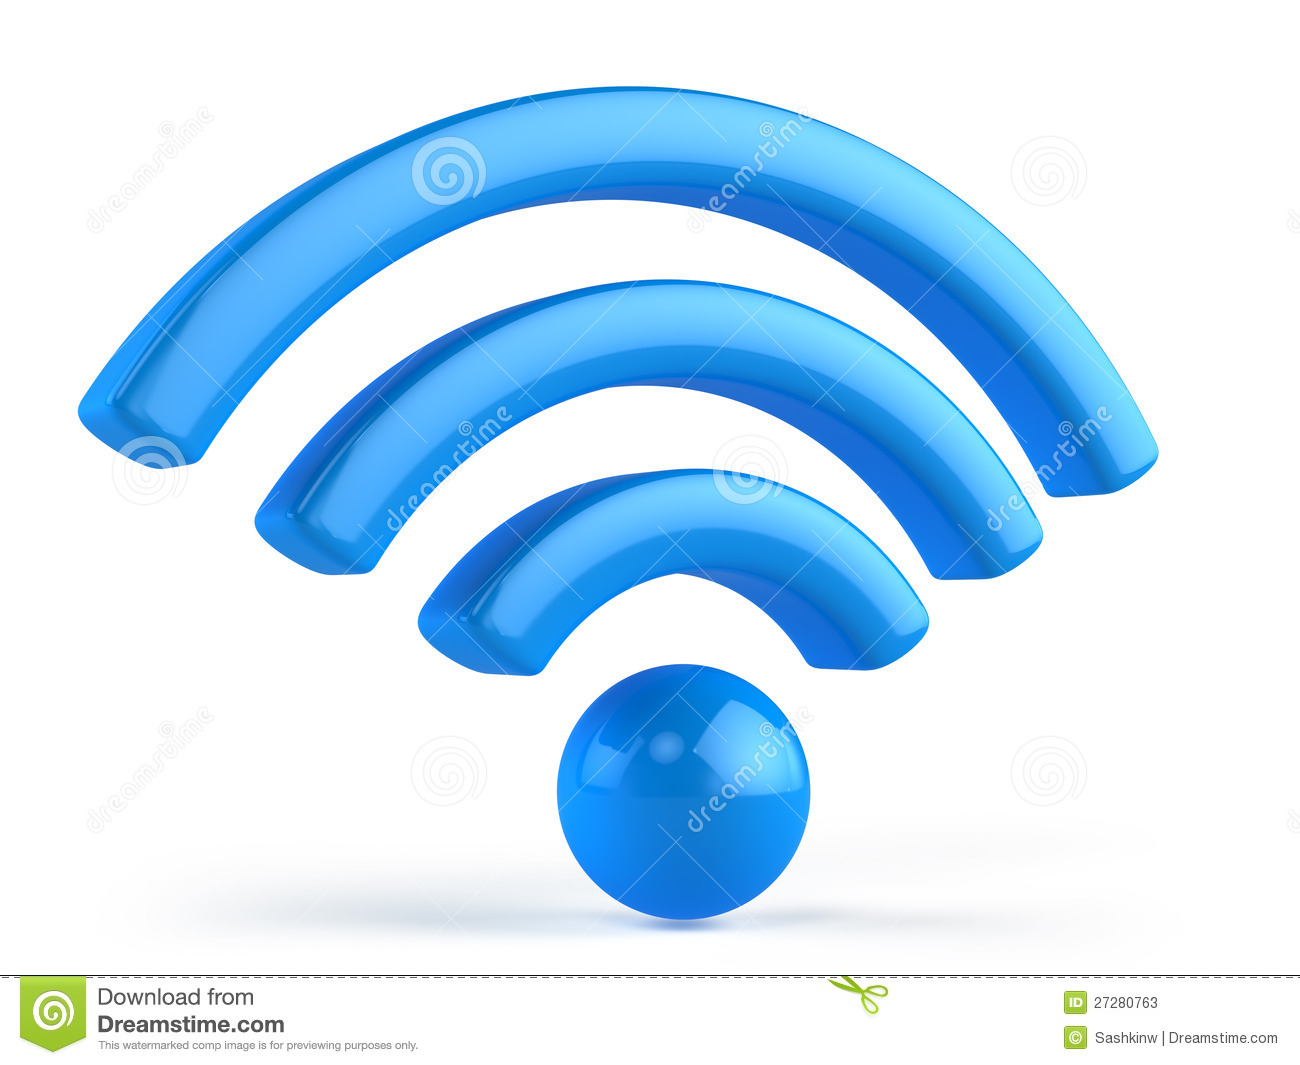 12 Wireless Signal Icon 3D Images